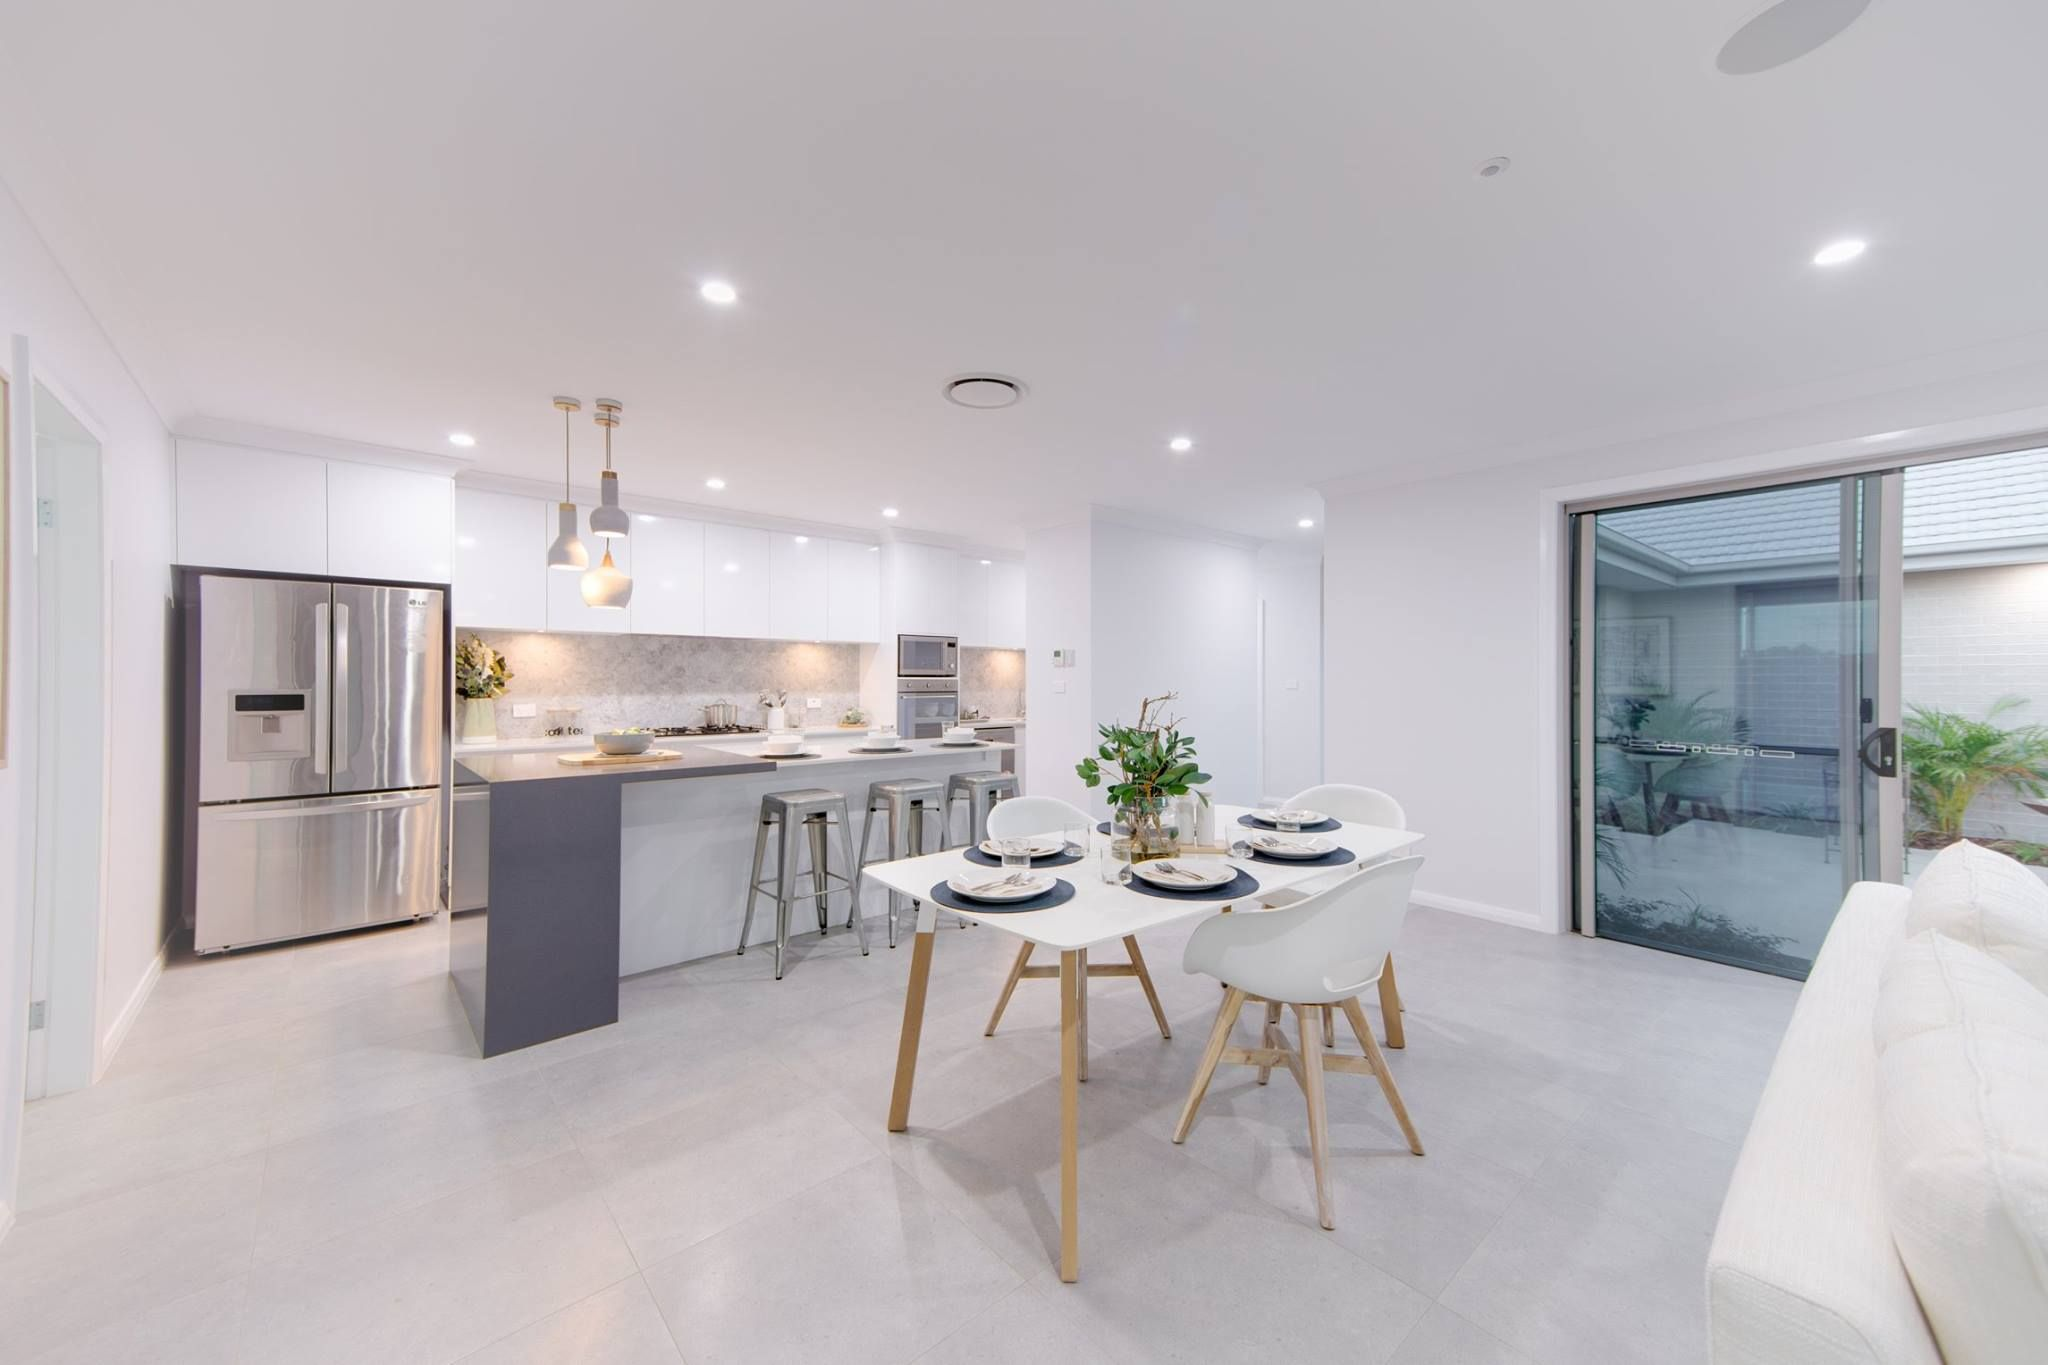 We are loving the combination of this kitchen's cool tones, pendant lighting and high ceilings. Built by the G.J. Gardner team at Tamworth.